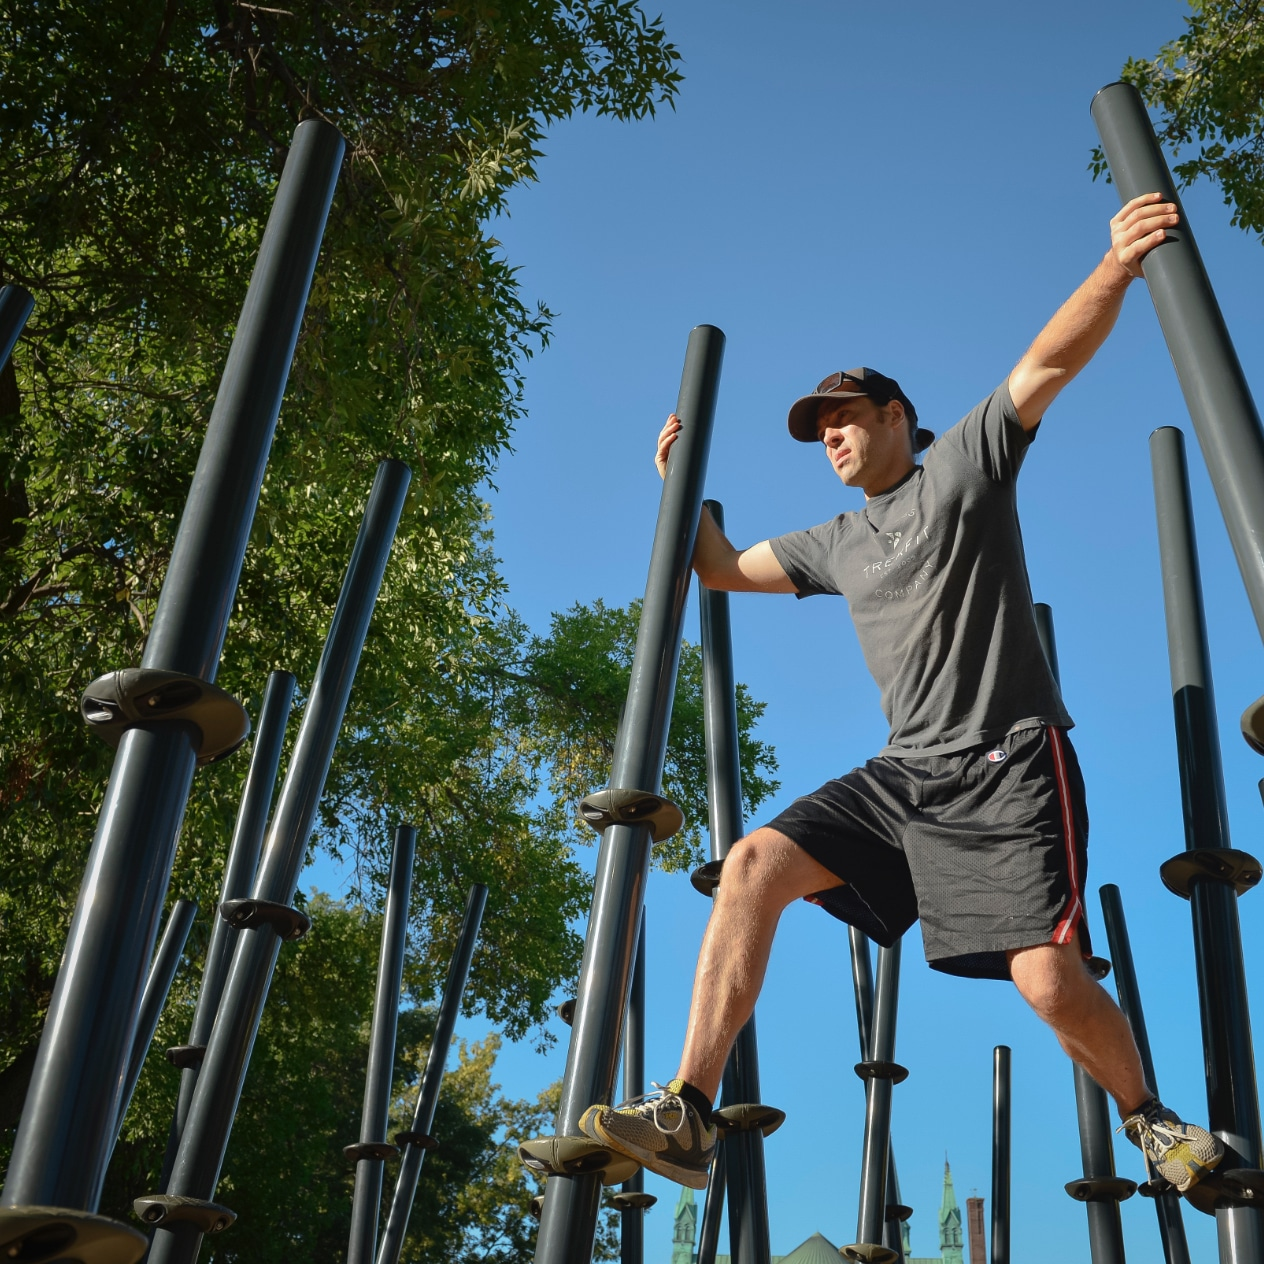 Person climbing through an outdoor obstacle course.